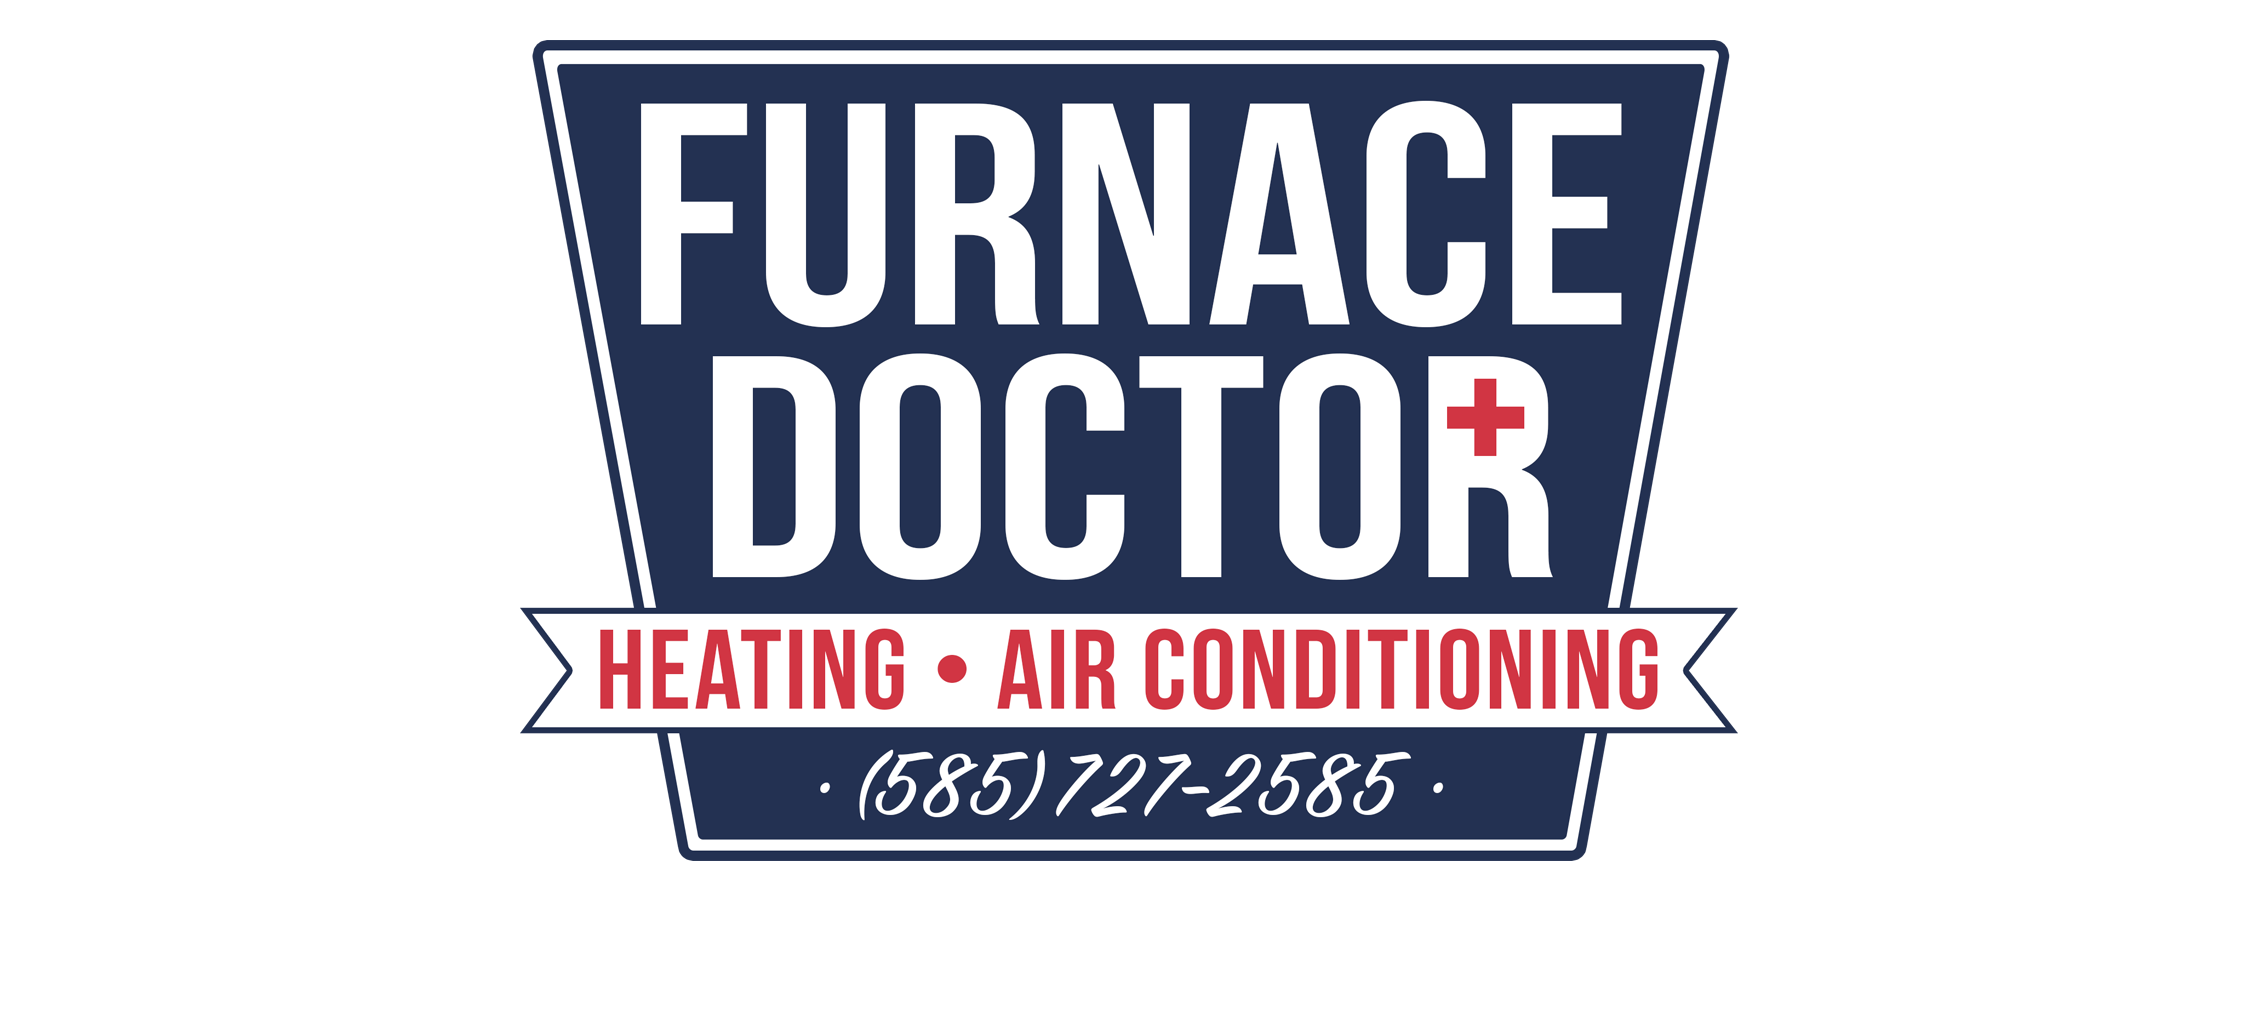 Furnace-Doctor NY HVAC Heating & Cooling